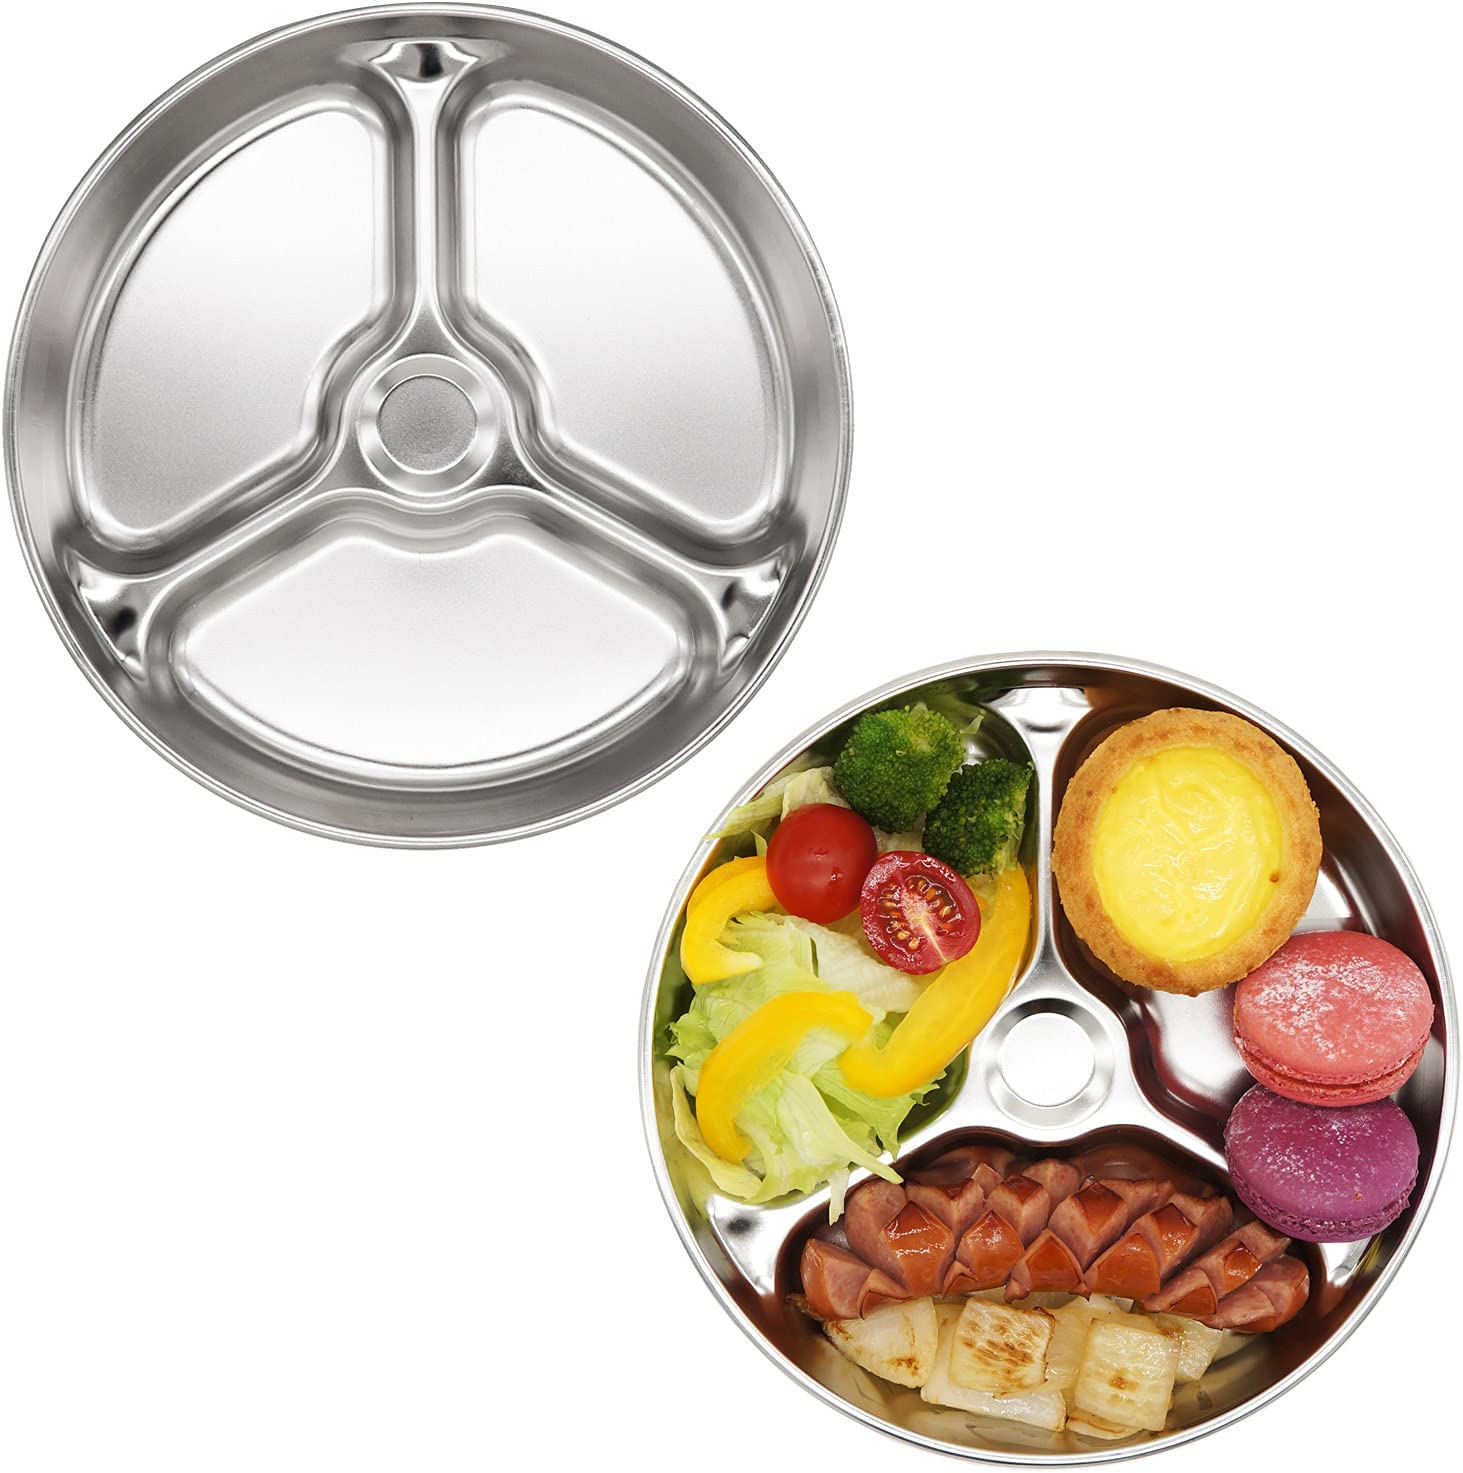 Korean Stainless Steel Divided Round Plates by KS&E, Kids Toddlers Babies Tray, BPA Free, Diet Food Control, Camping Dishes, Compact Serving Platter, Dinner Snack, 3 Compartment Plate Silver, Set of 2